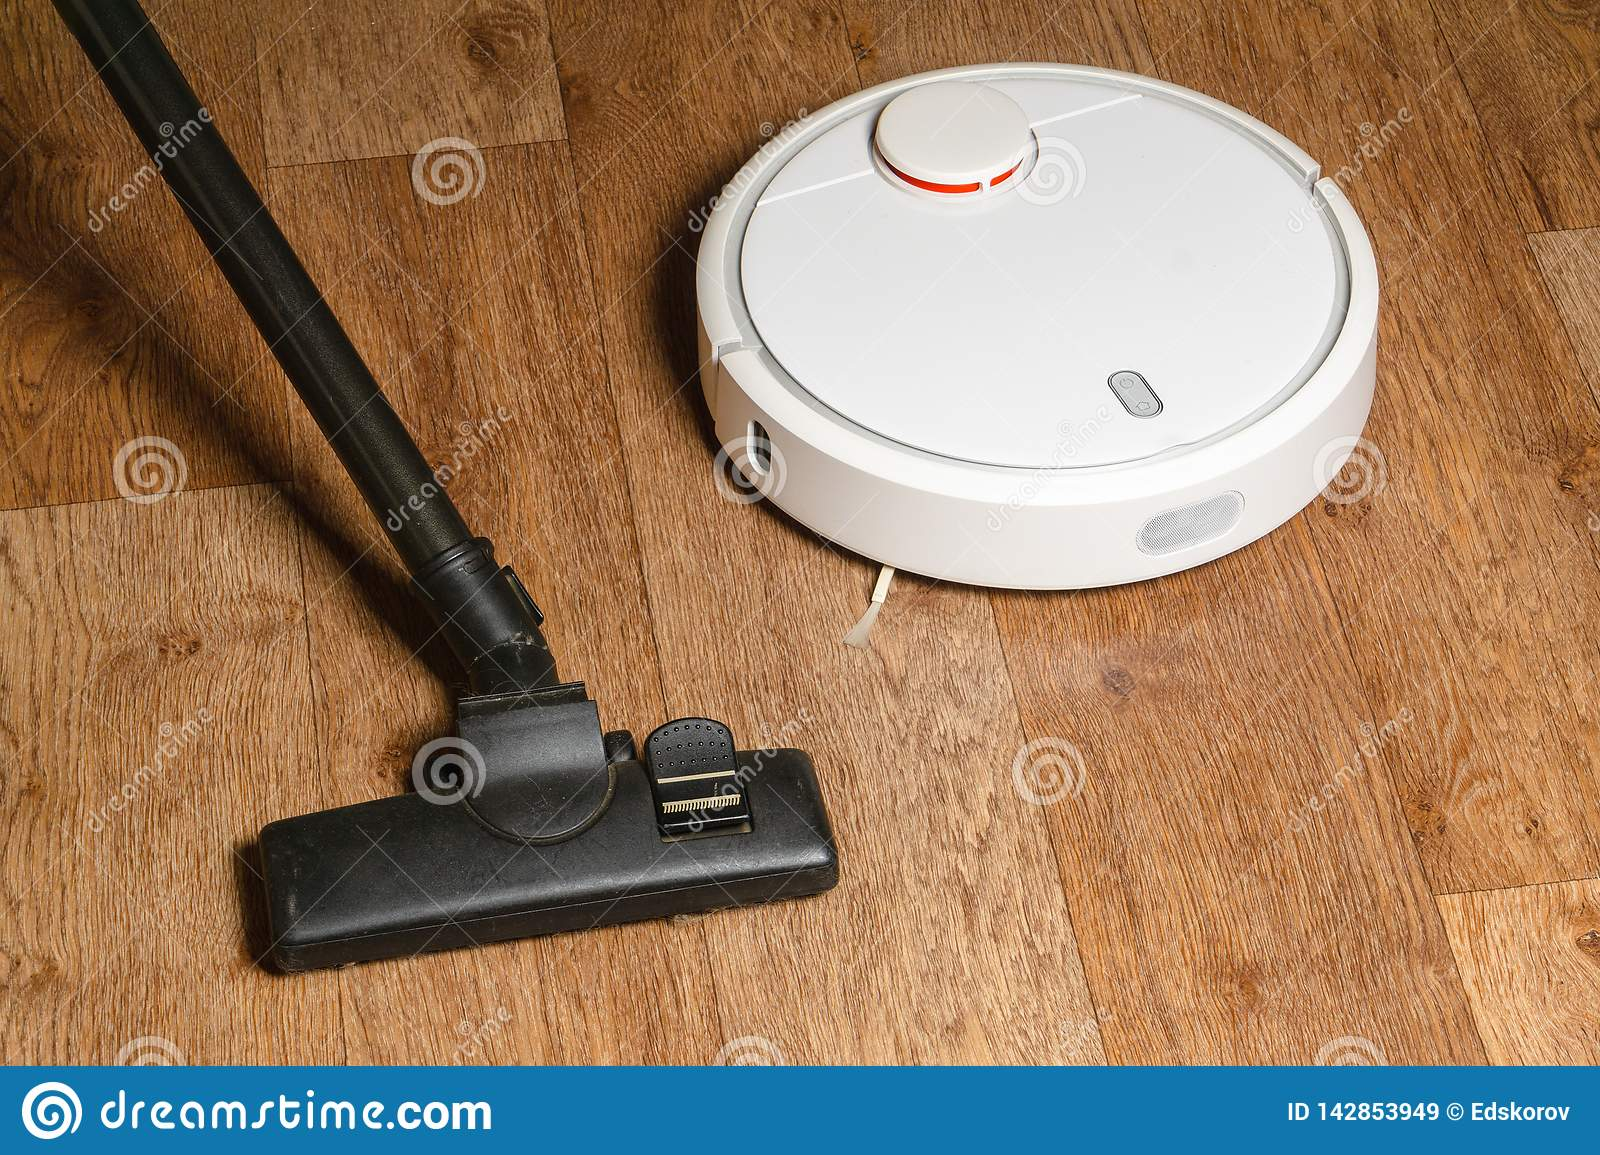 Old vacuum cleaner and new robot vacuum cleaner on the floor